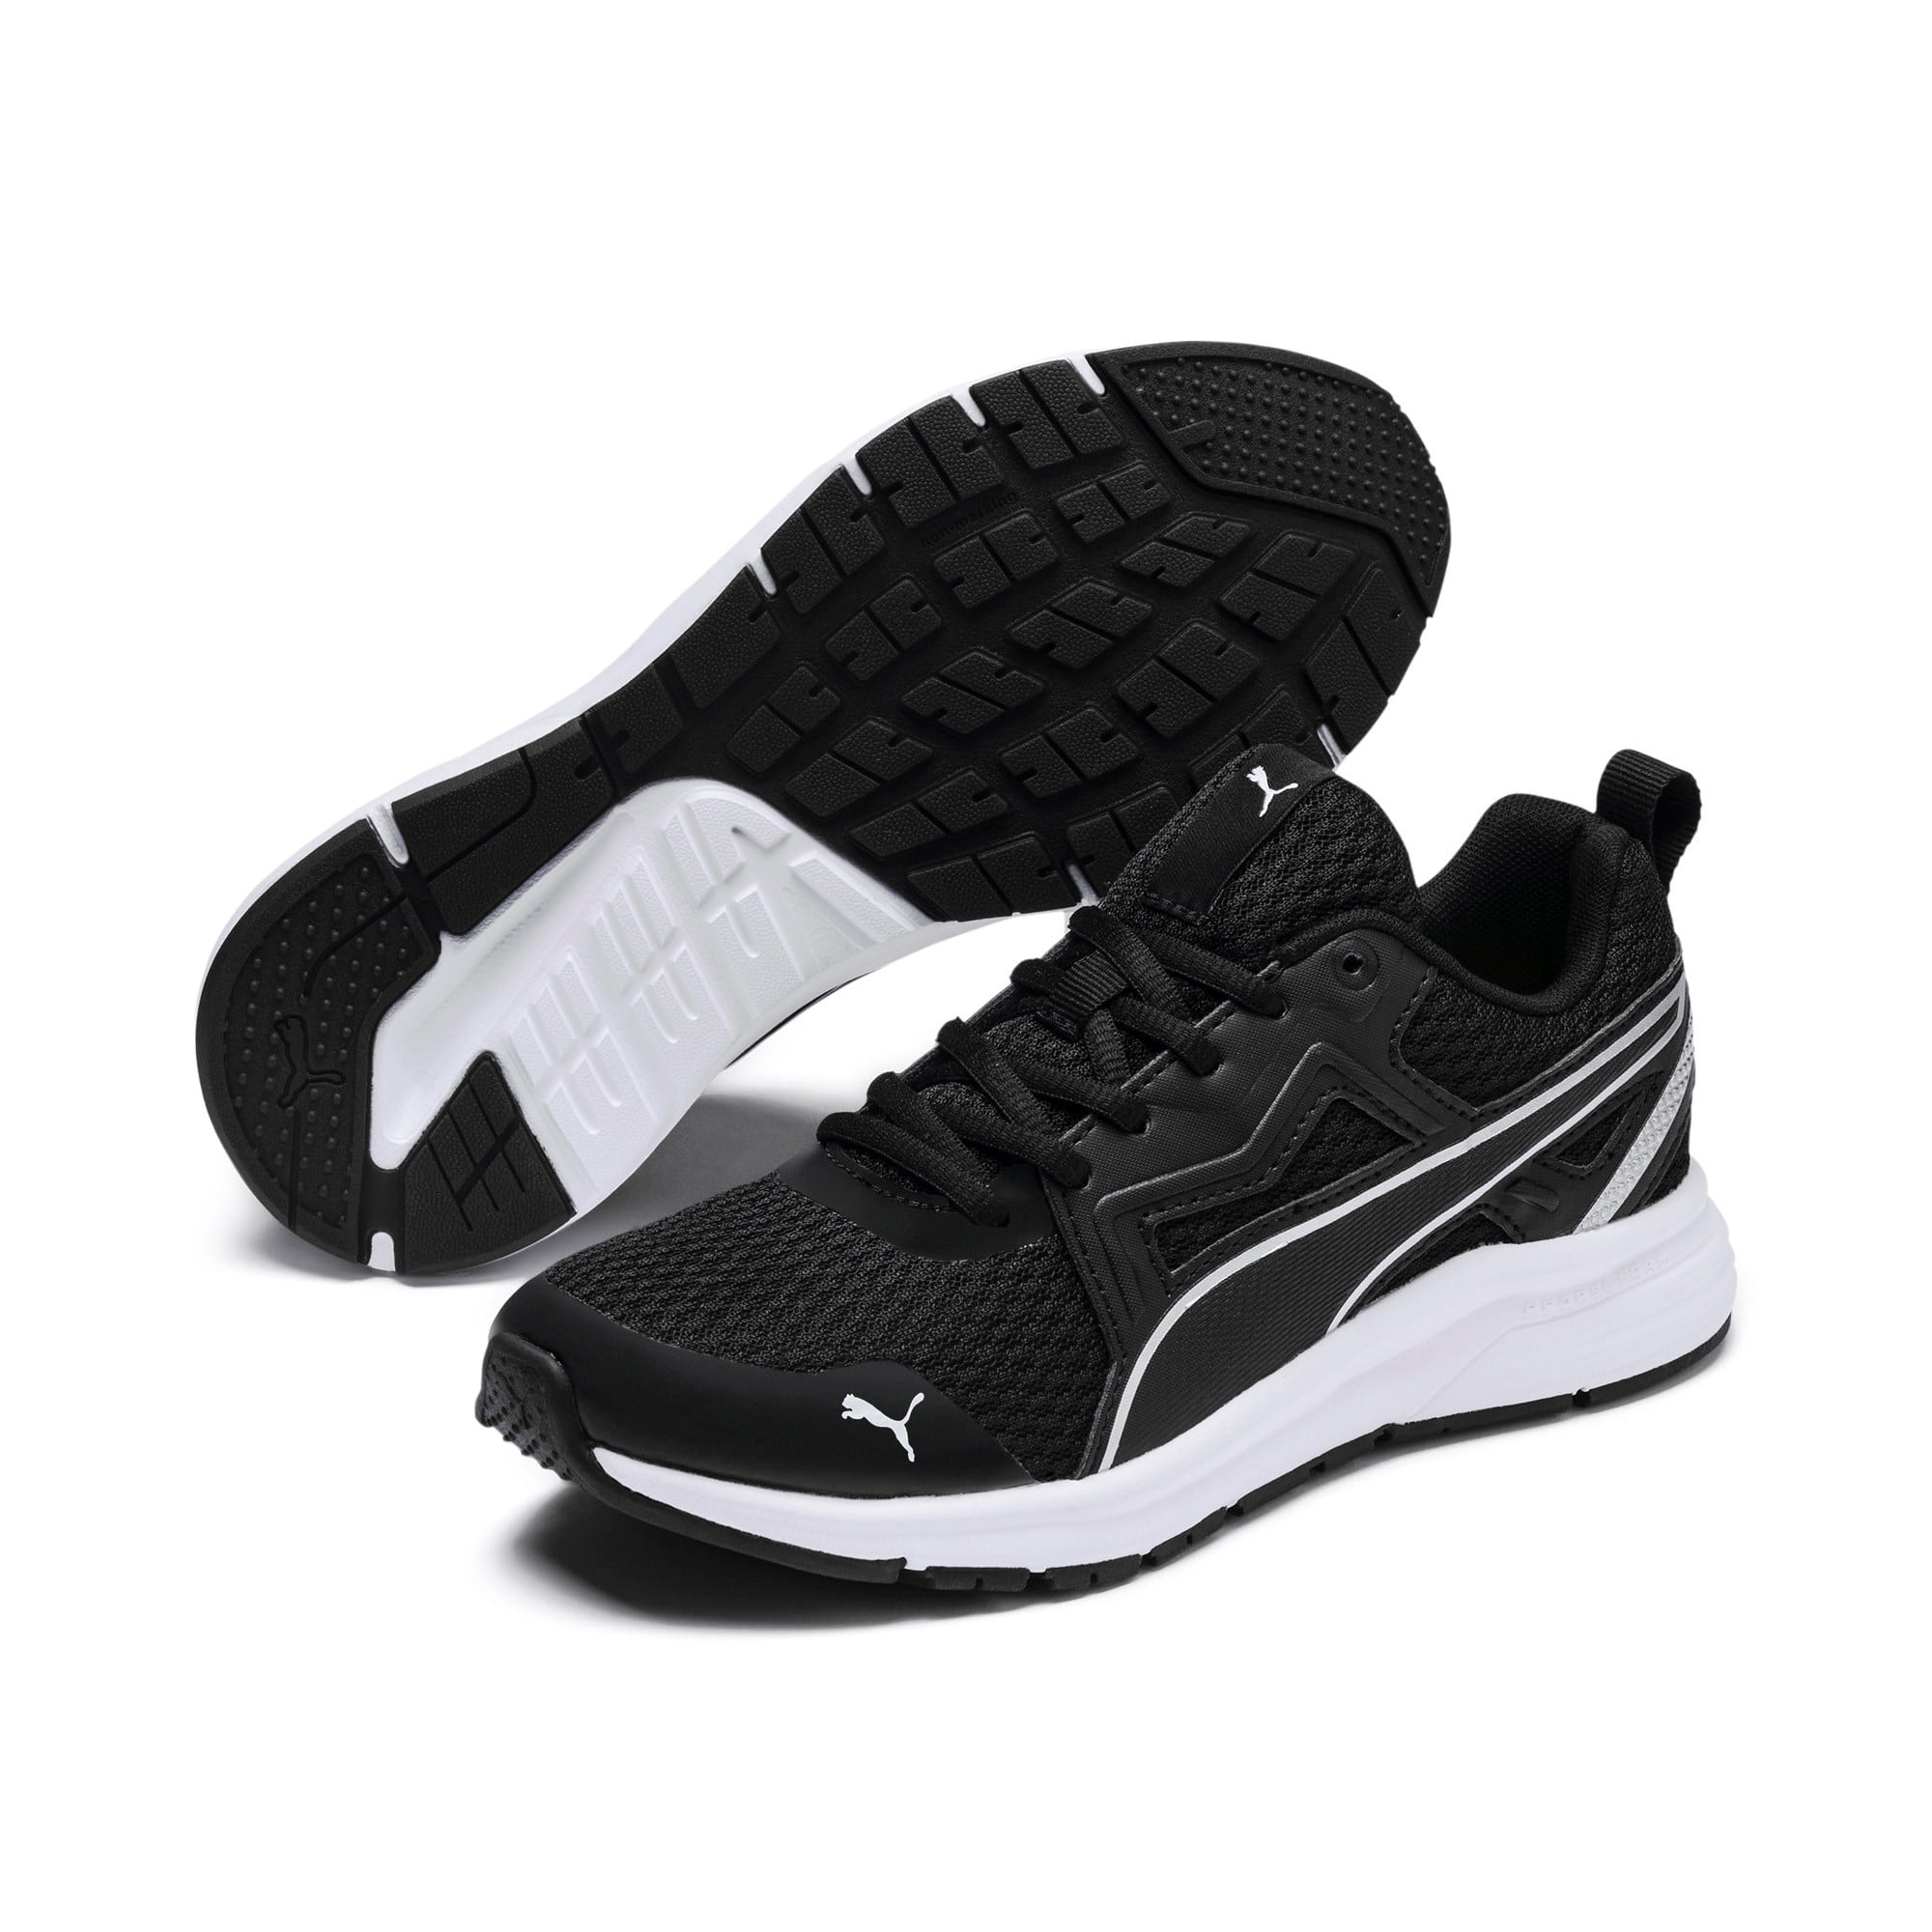 Thumbnail 2 of Pure Jogger Youth Trainers, Black-Silver-Wht-Nrgy Yellow, medium